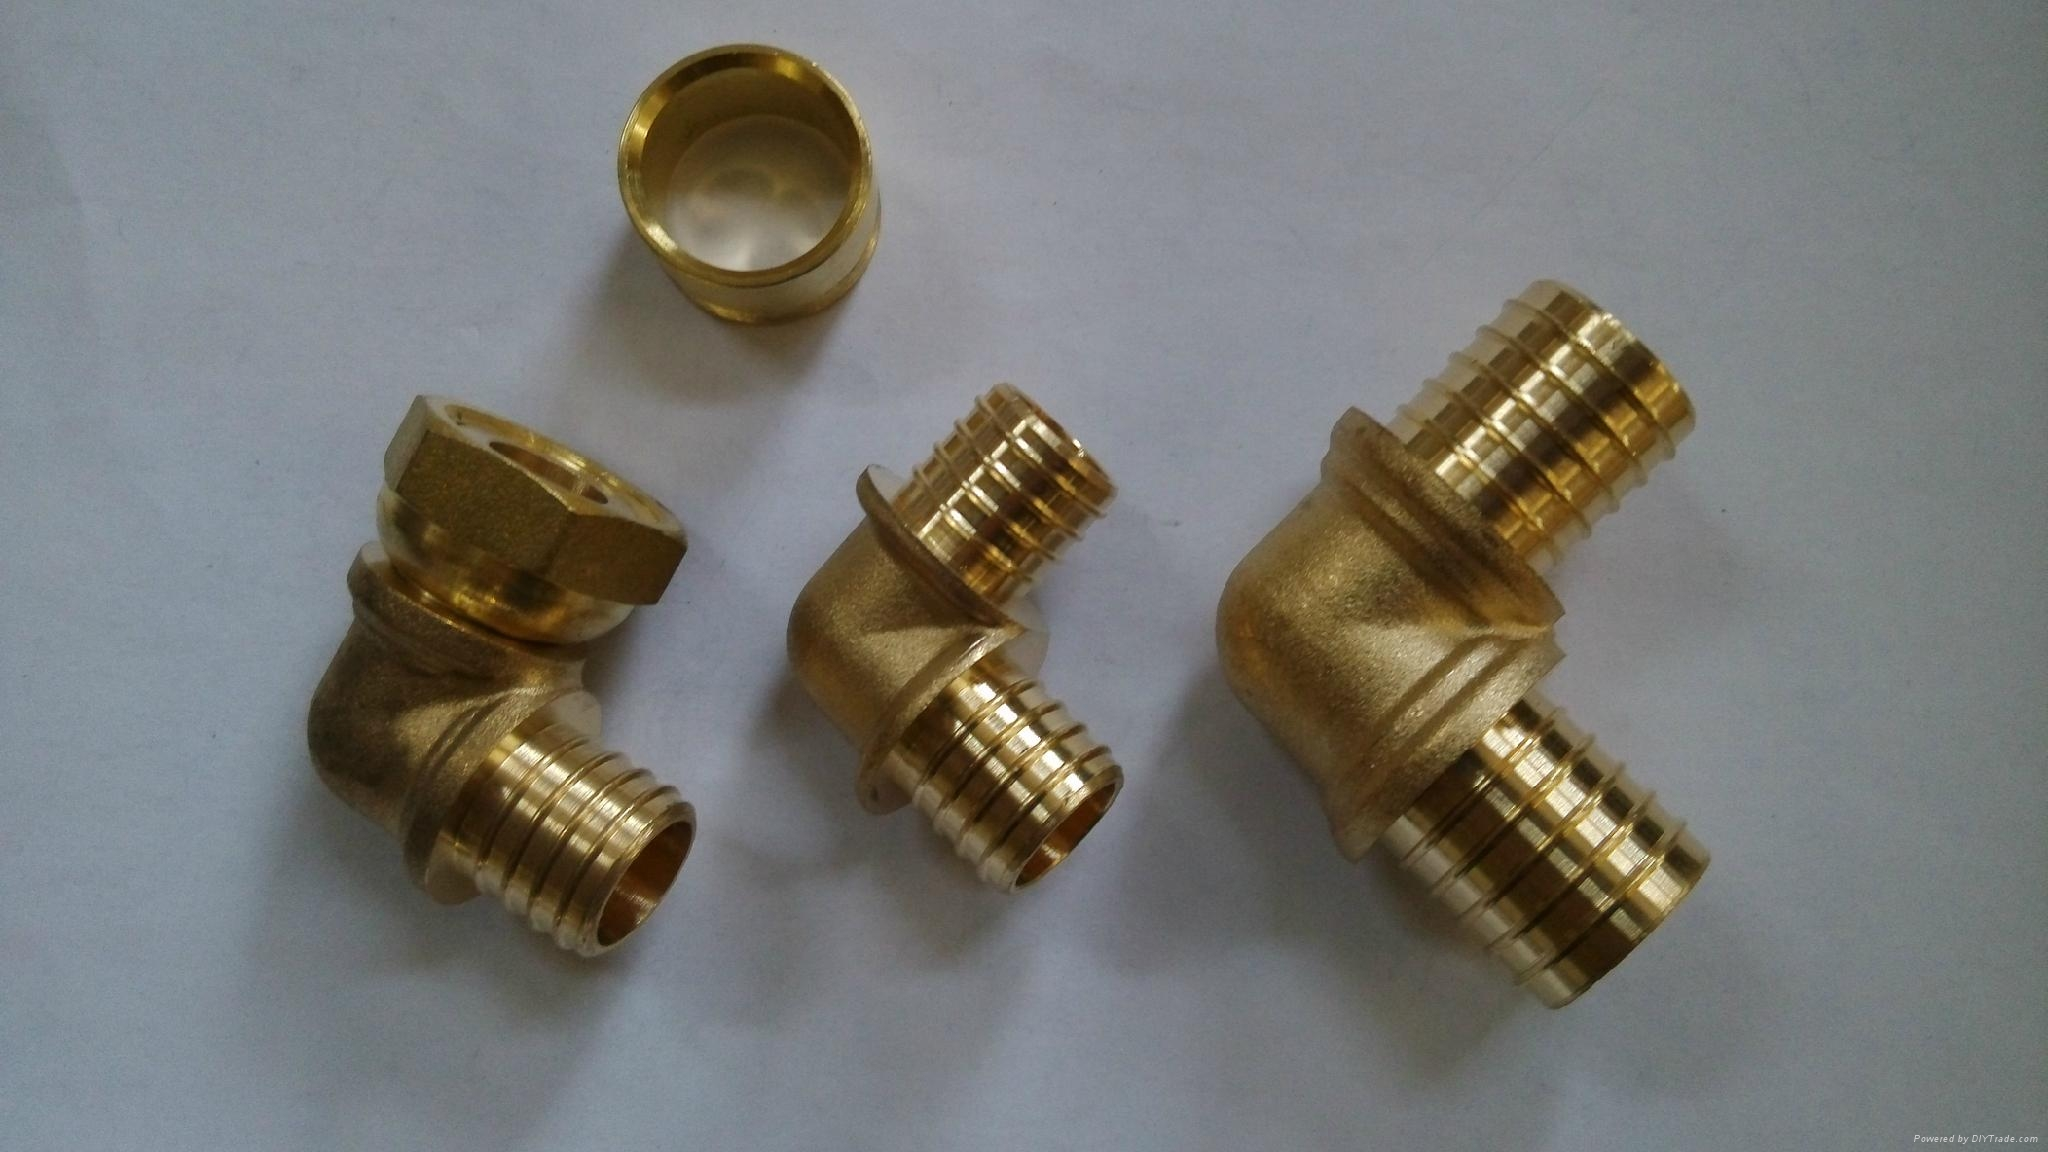 #967B35 Pex Fitting Elbow Brass Fitting Equal Elbow For Plumbing  Best 4493 Hvac Pipe Fittings photos with 2048x1152 px on helpvideos.info - Air Conditioners, Air Coolers and more